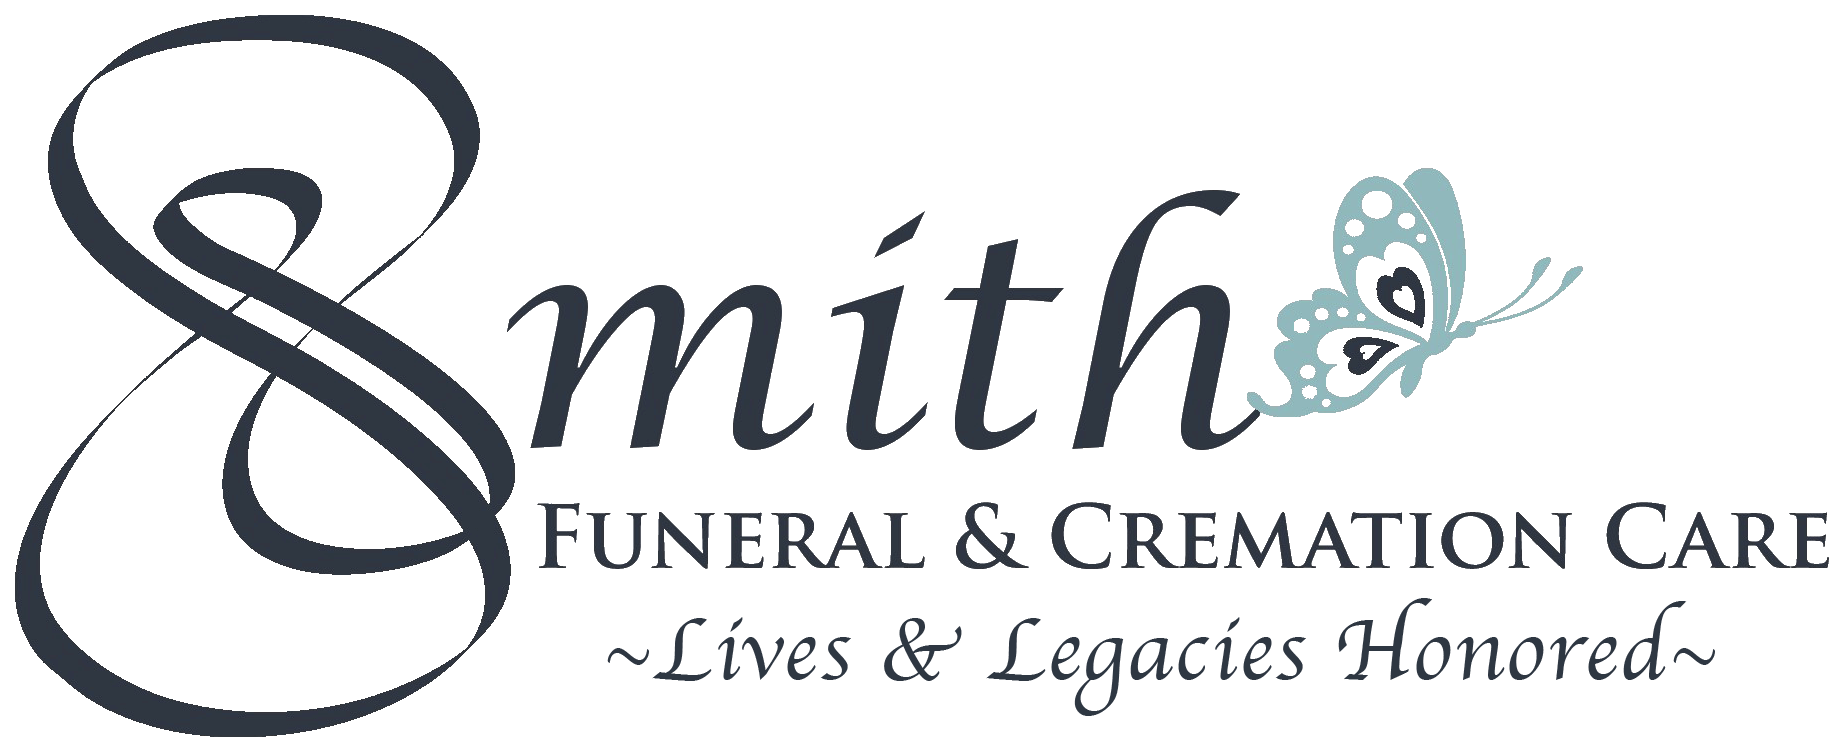 All Obituaries | Smith Funeral & Cremation Care | Morgantown